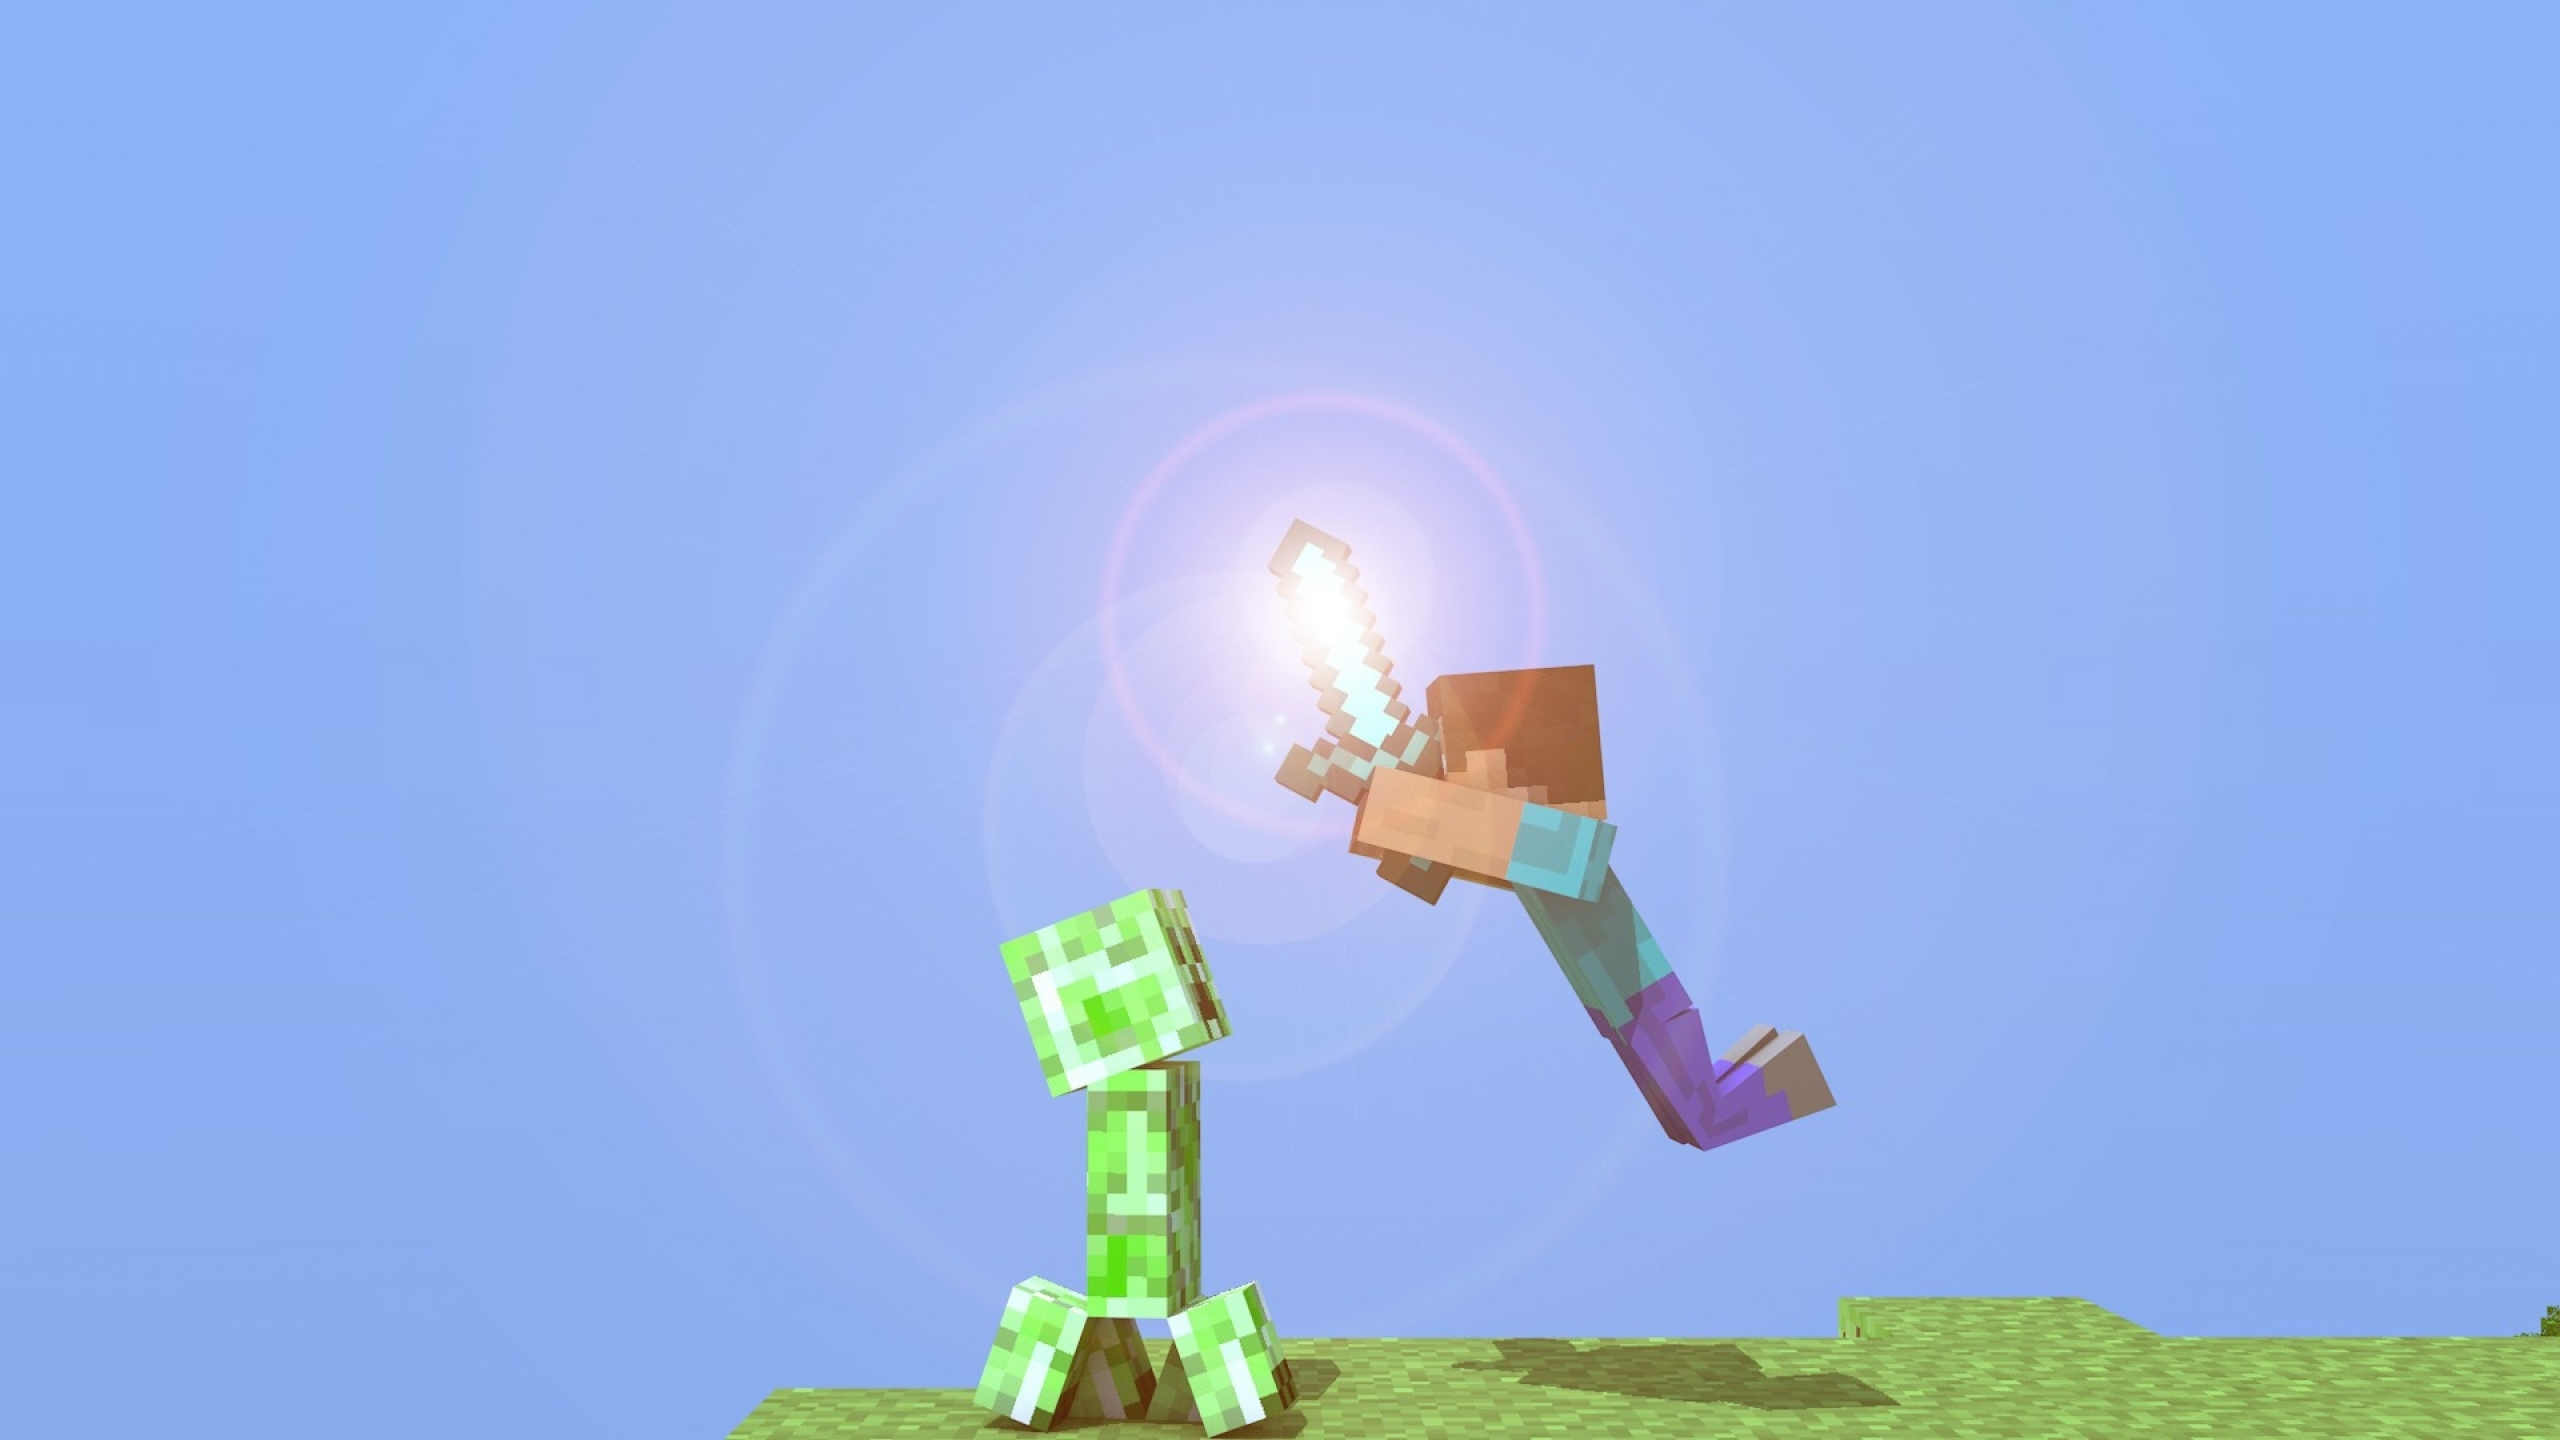 1440 2560 Wallpaper Minecraft X Size Neather